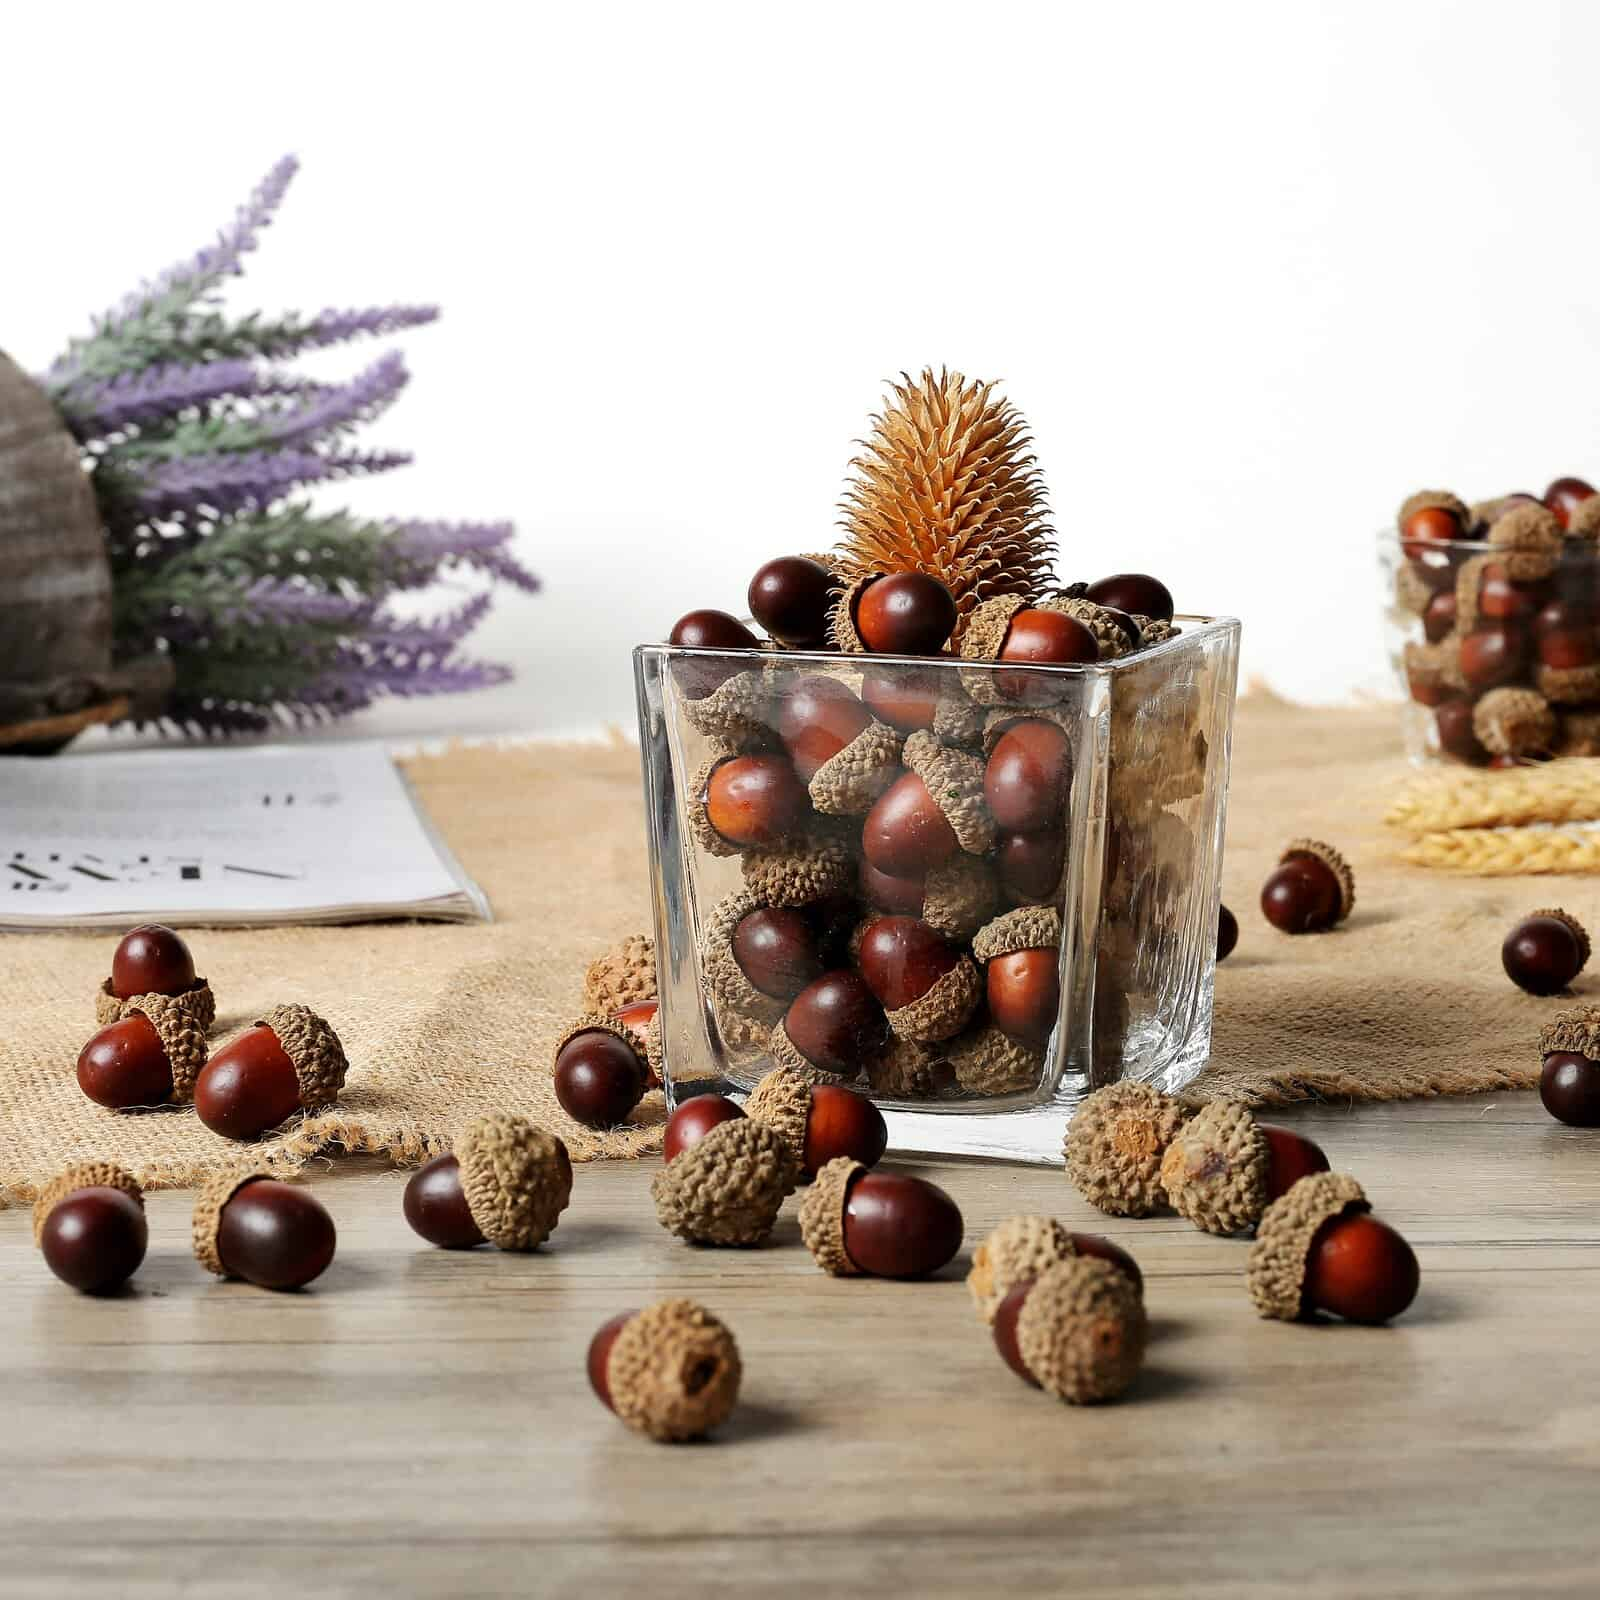 Use Evergreens, Acorns, and Pinecones to Decorate